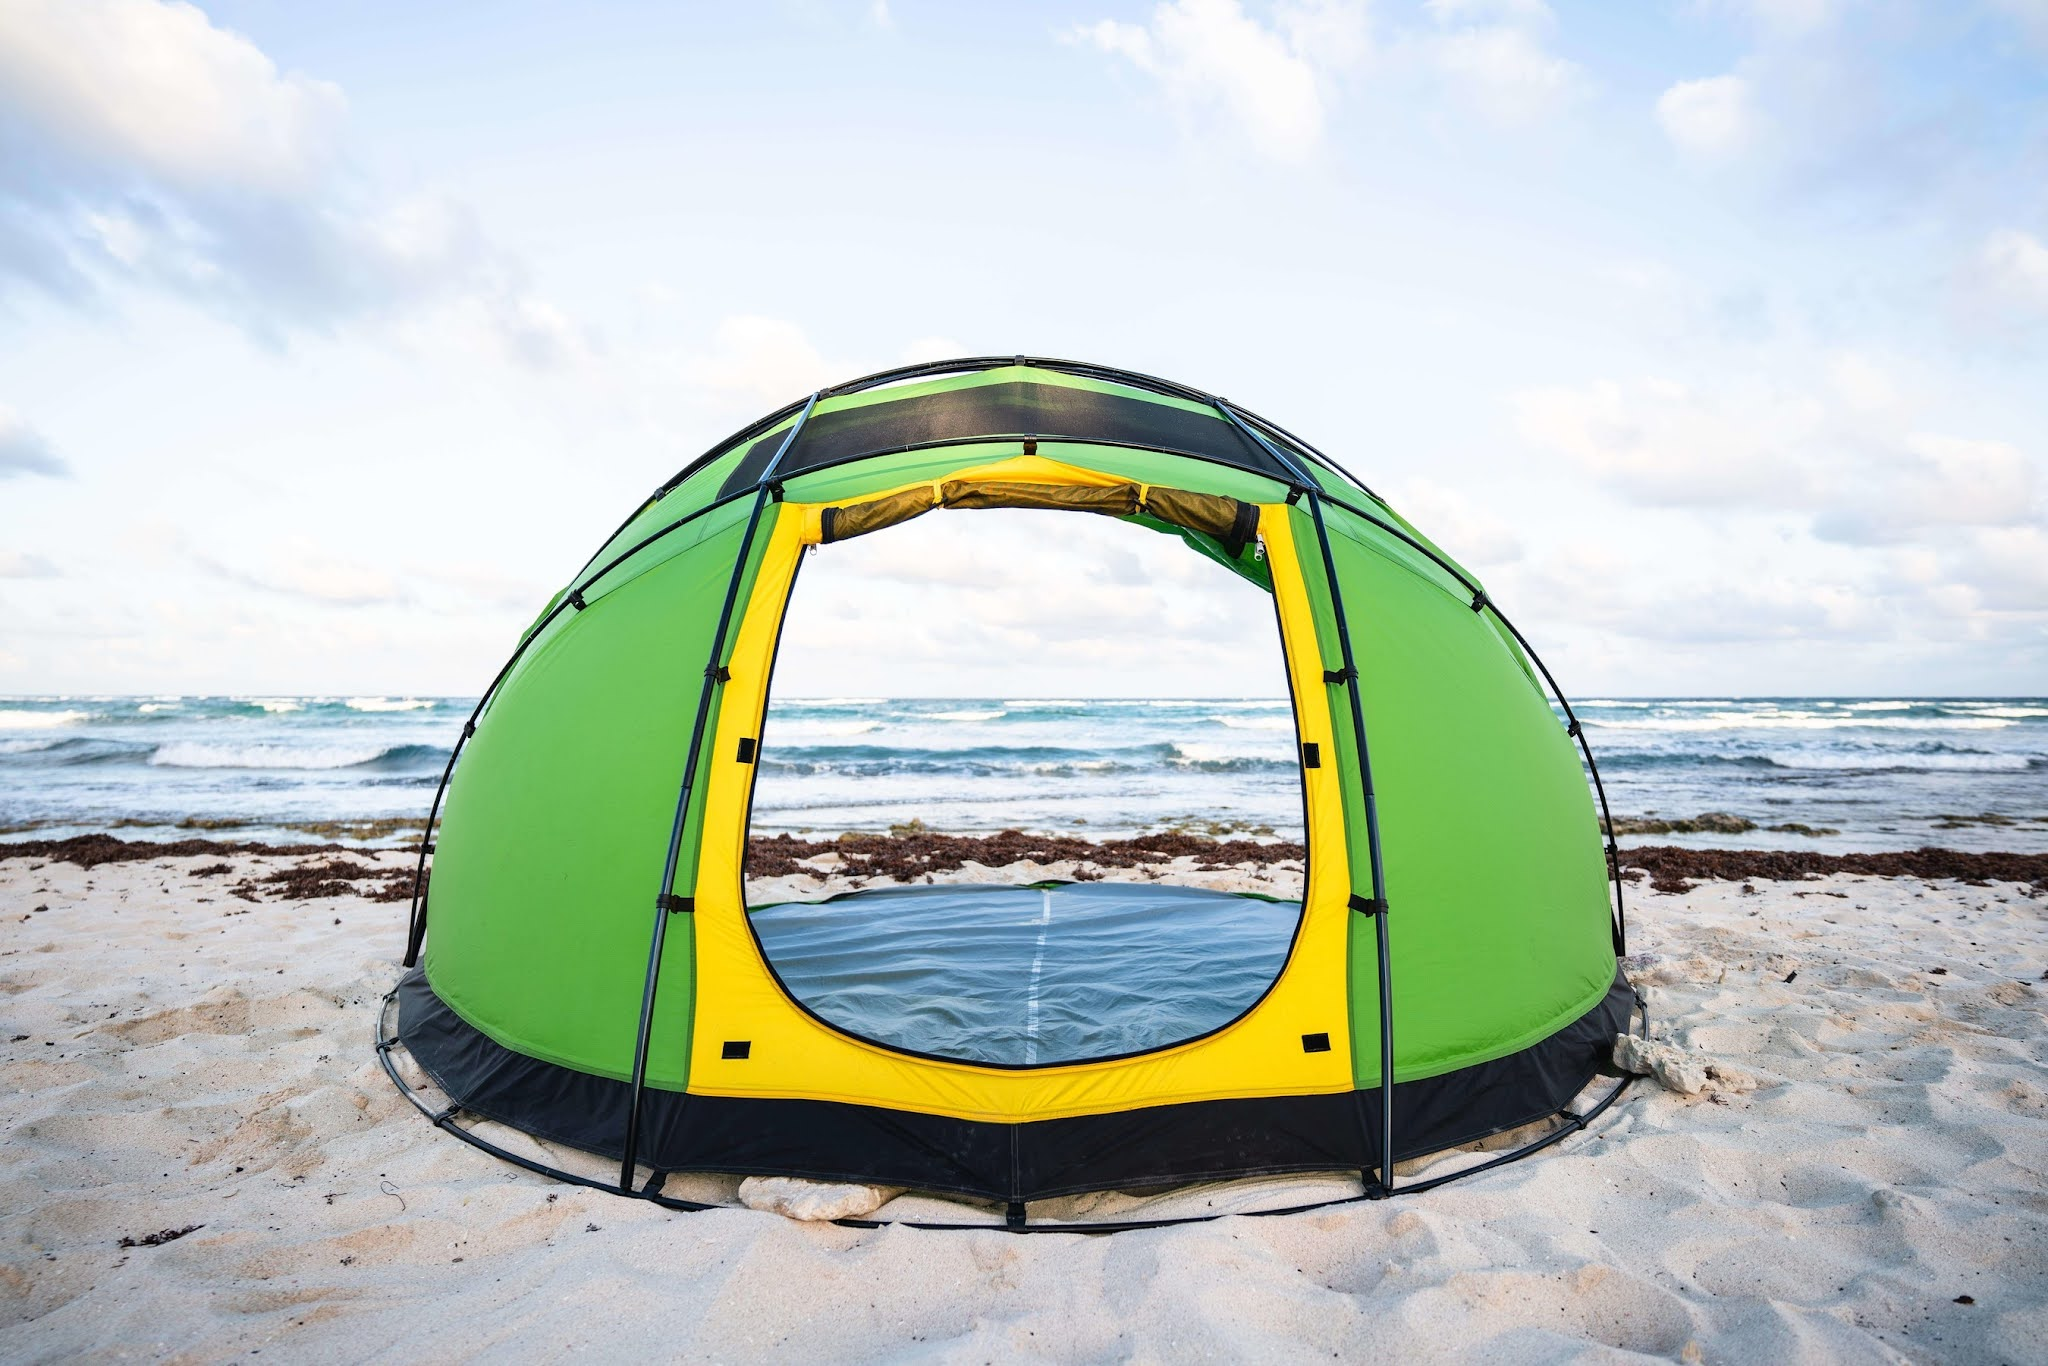 The World's First Retractable Tent: The Escape M4